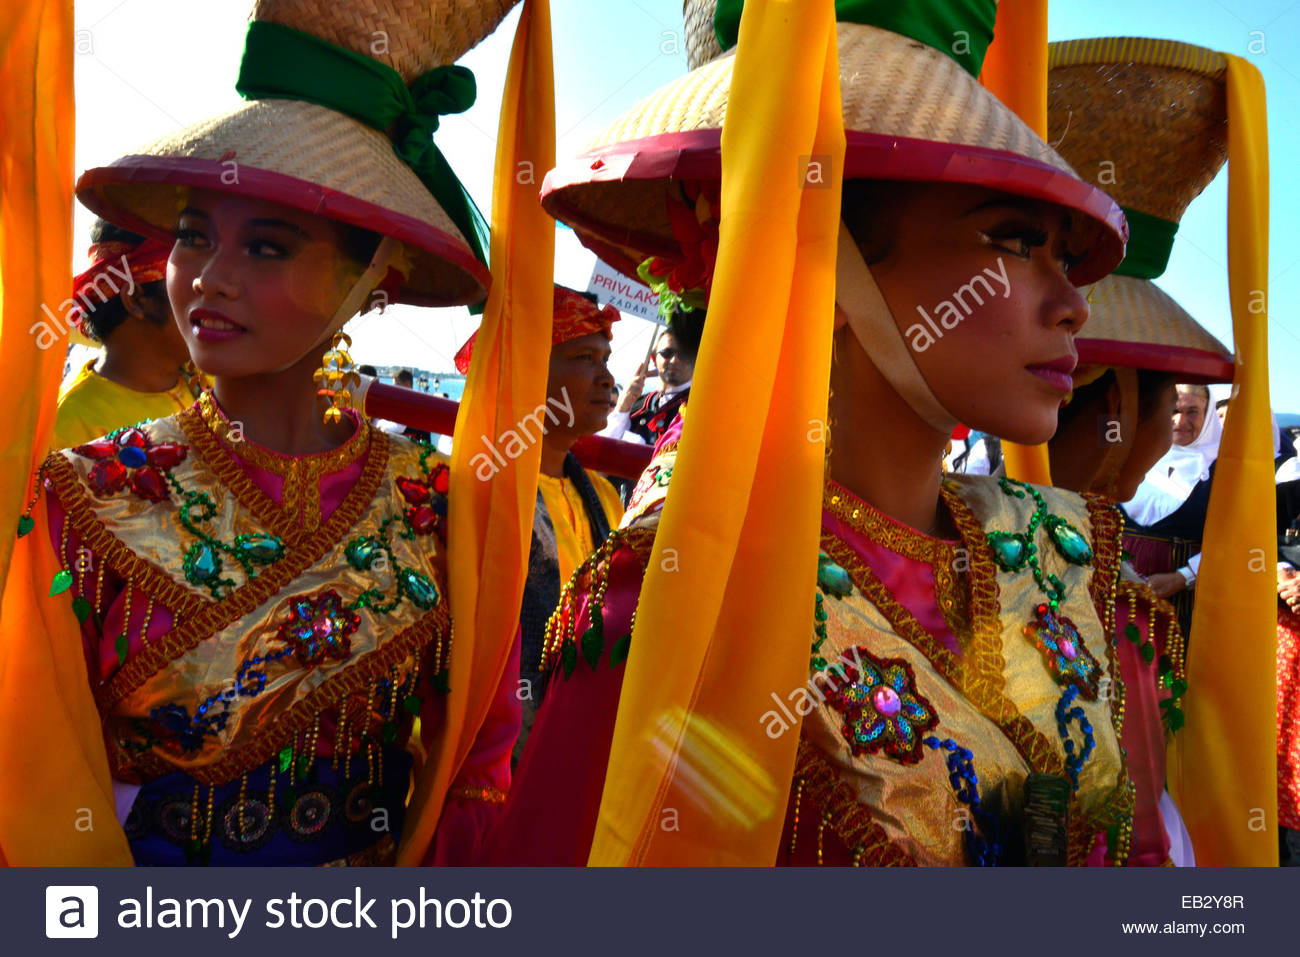 A delegation wearing traditional costumes at the World Championship of Folklore. - Stock Image